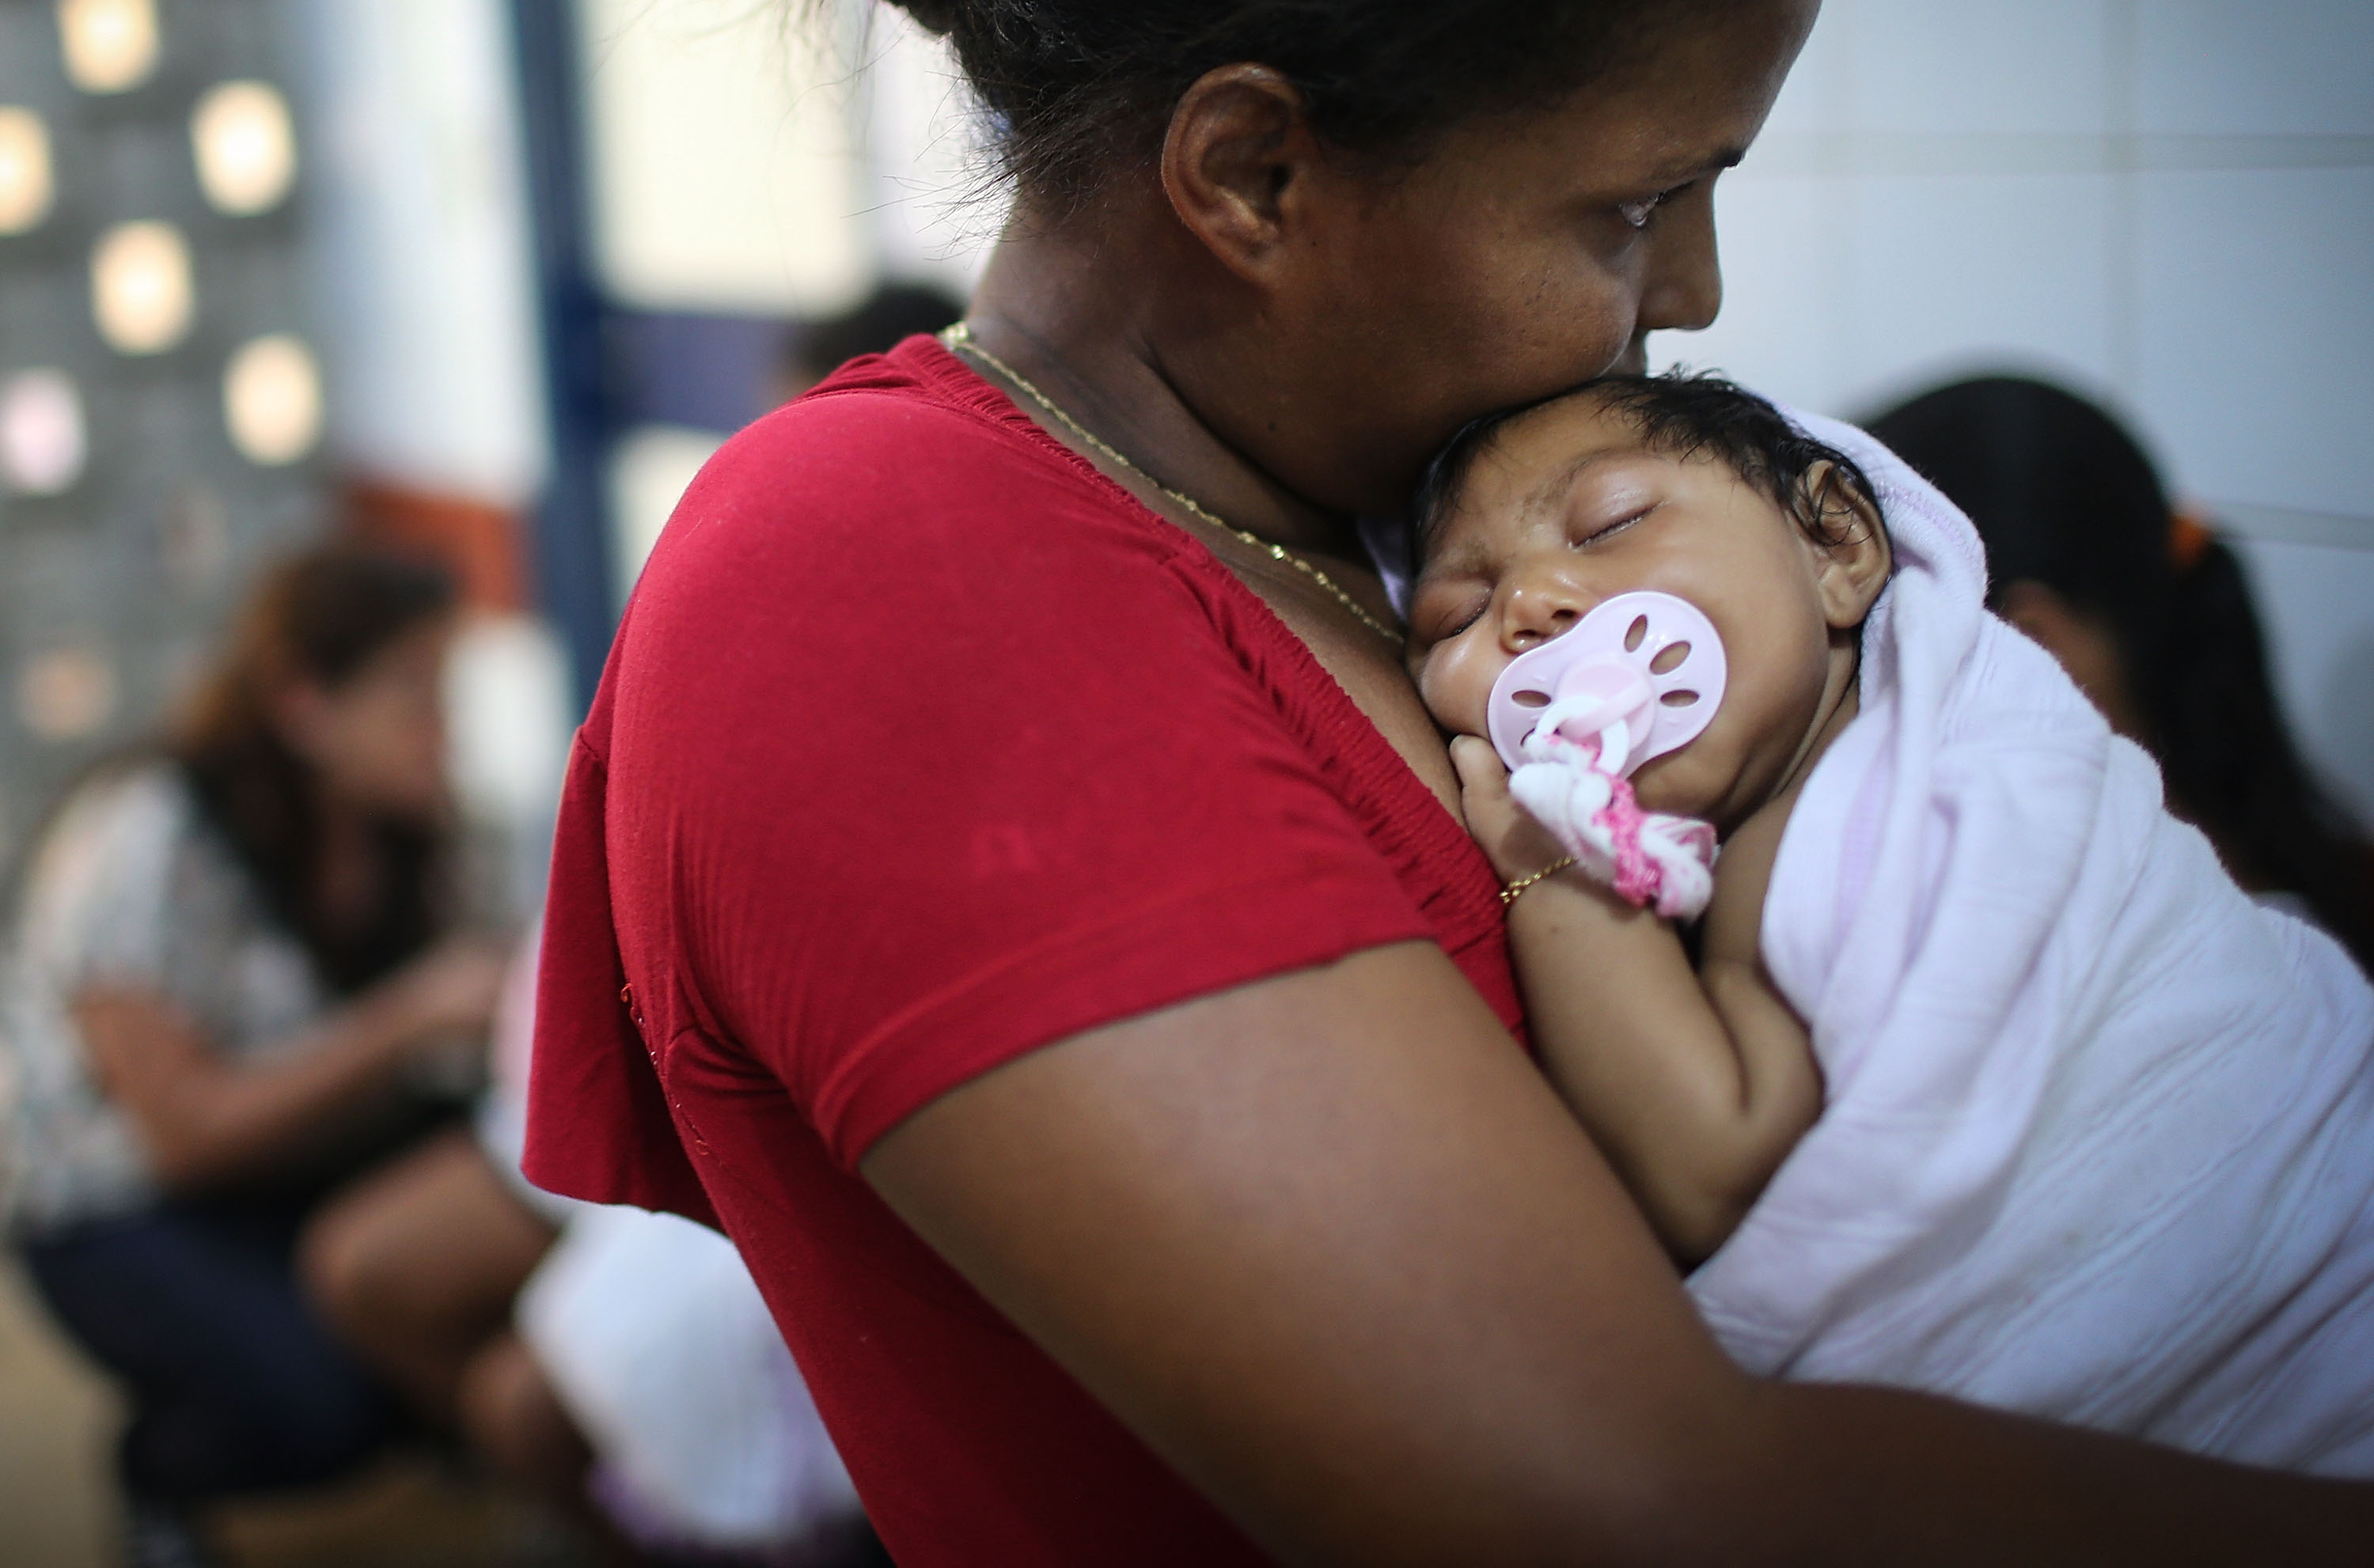 Grandmother Ivalda Caetano holds 2-month-old Ludmilla Hadassa Dias de Vasconcelos, who has microcephaly, at Oswald Cruz hospital on January 26, 2016 in Recife, Brazil. In the last four months, authorities have recorded close to 4,000 cases in Brazil in which the mosquito-borne Zika virus may have led to microcephaly in infants. The ailment results in an abnormally small head in newborns and is associated with various disorders including decreased brain development. (Getty)